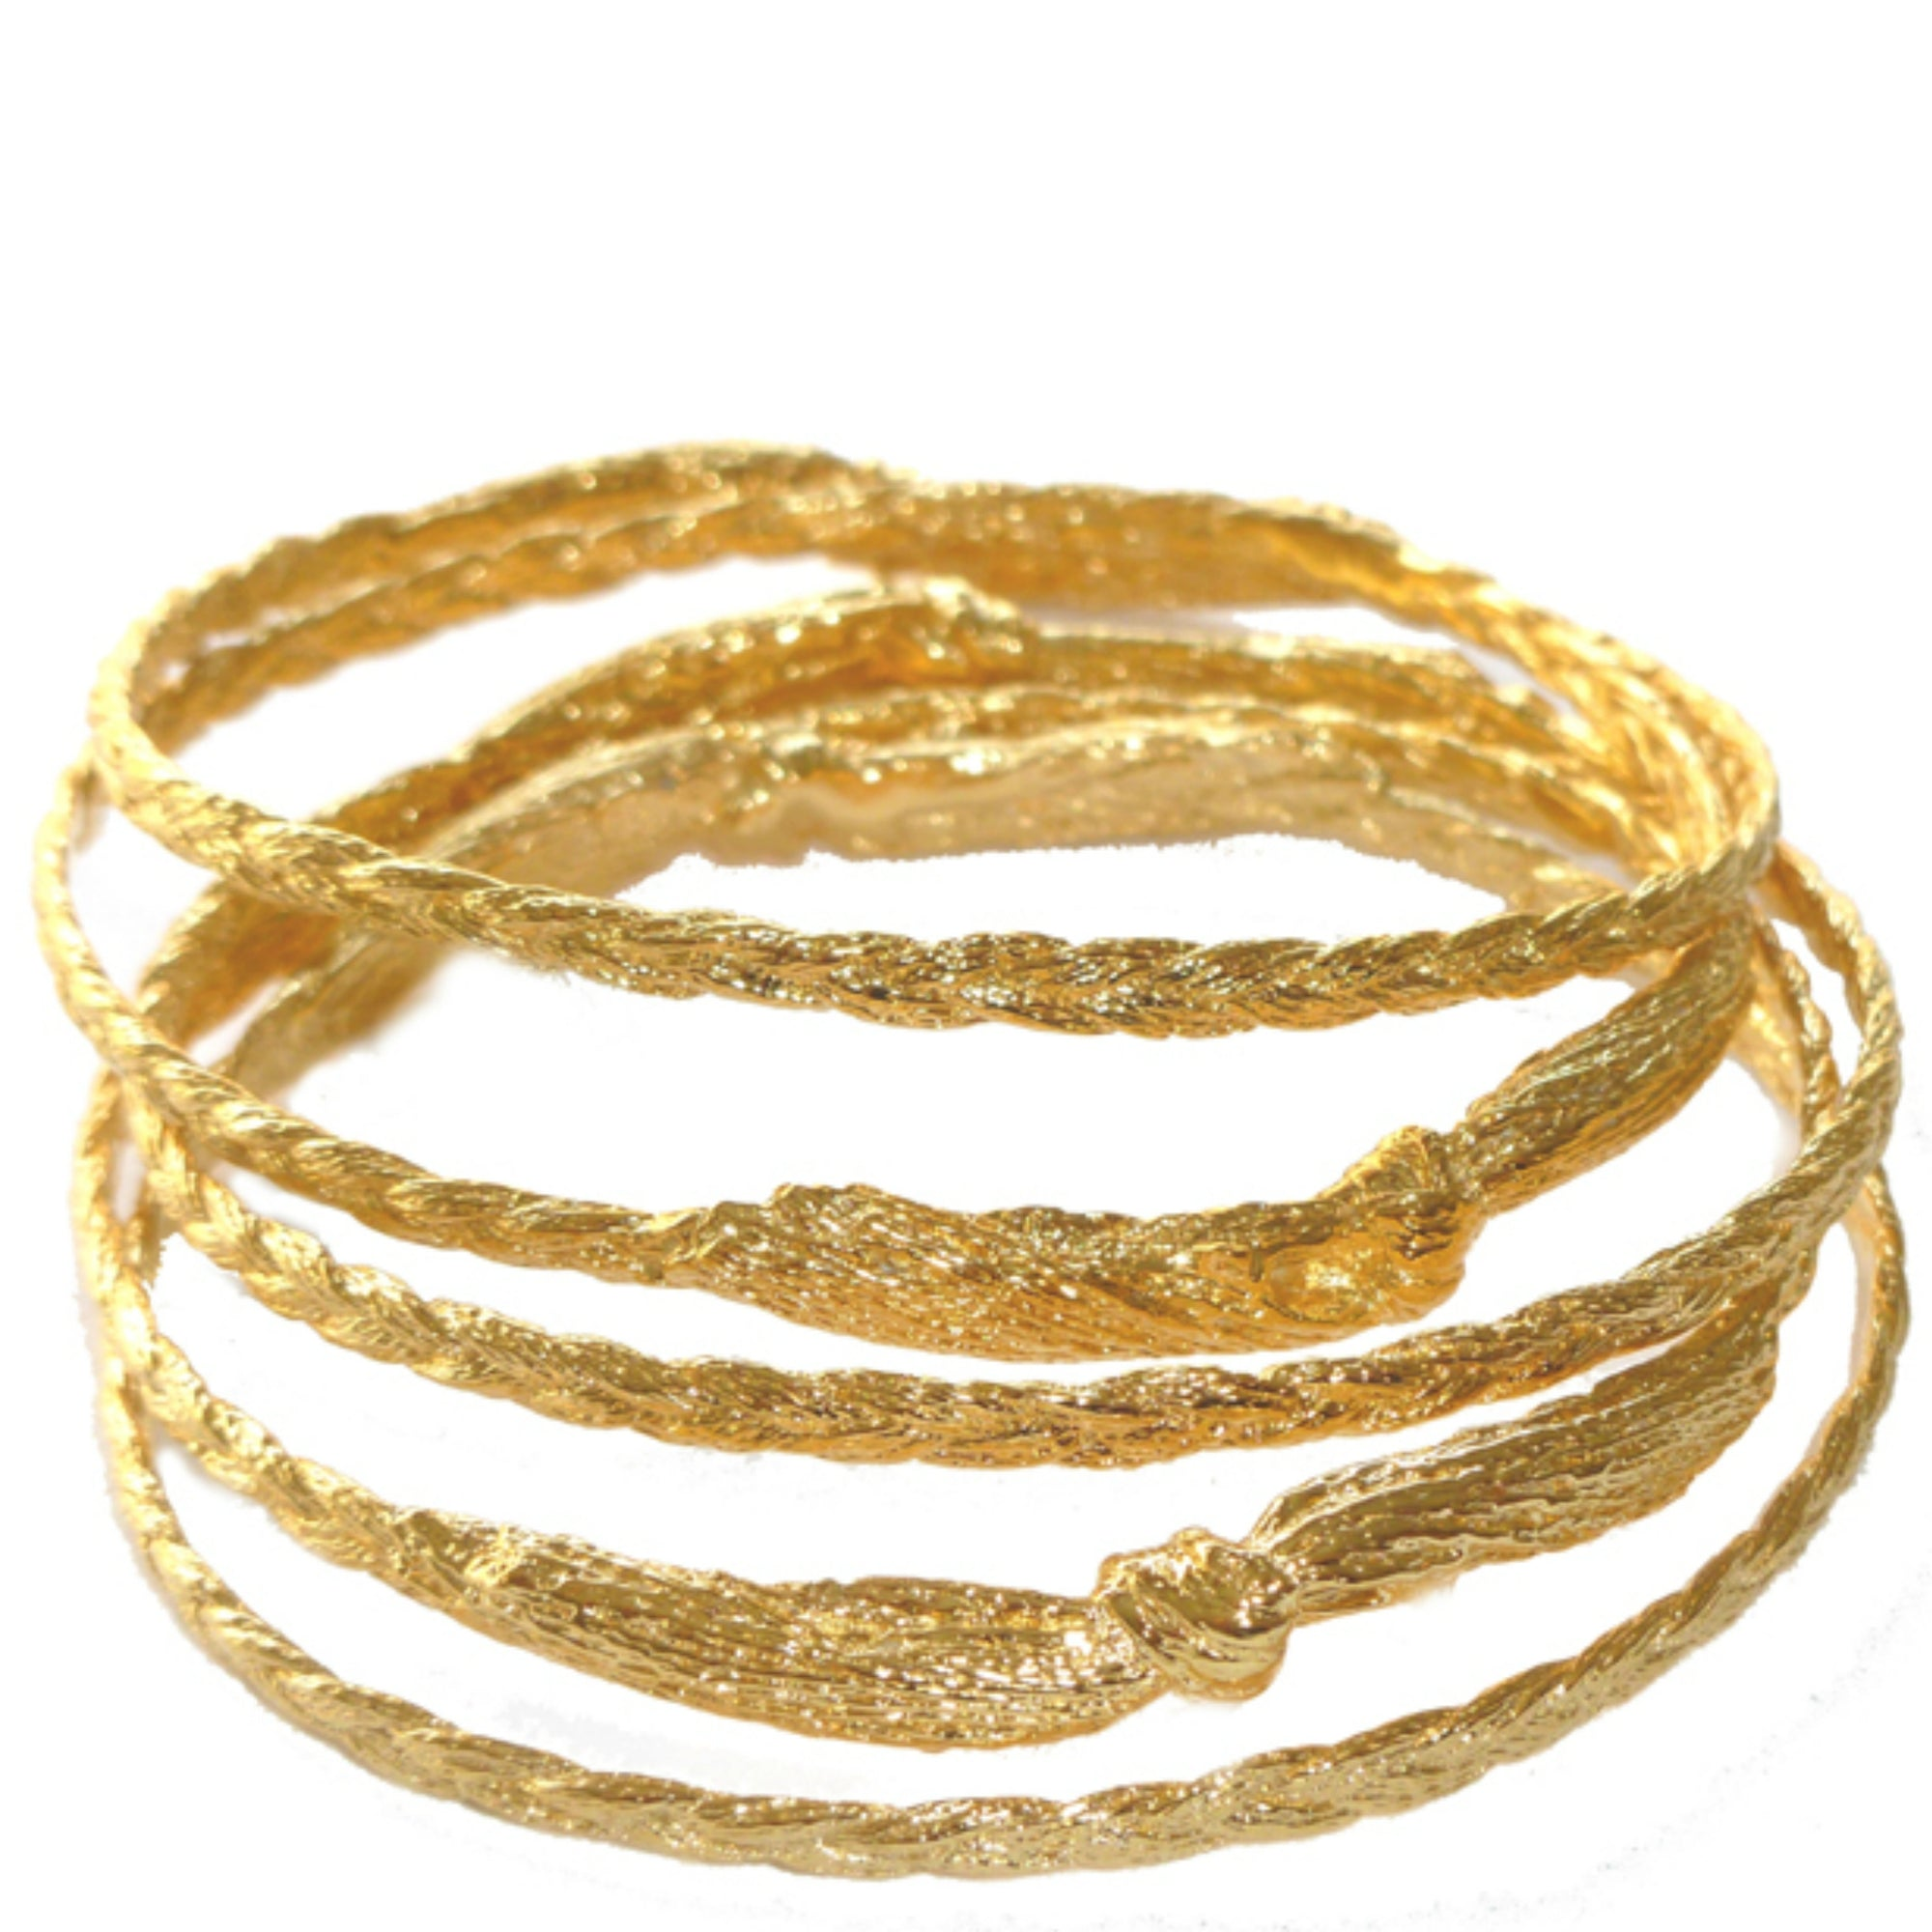 bronze and rings ida ringsweb braonze elsje bangle bangles solid